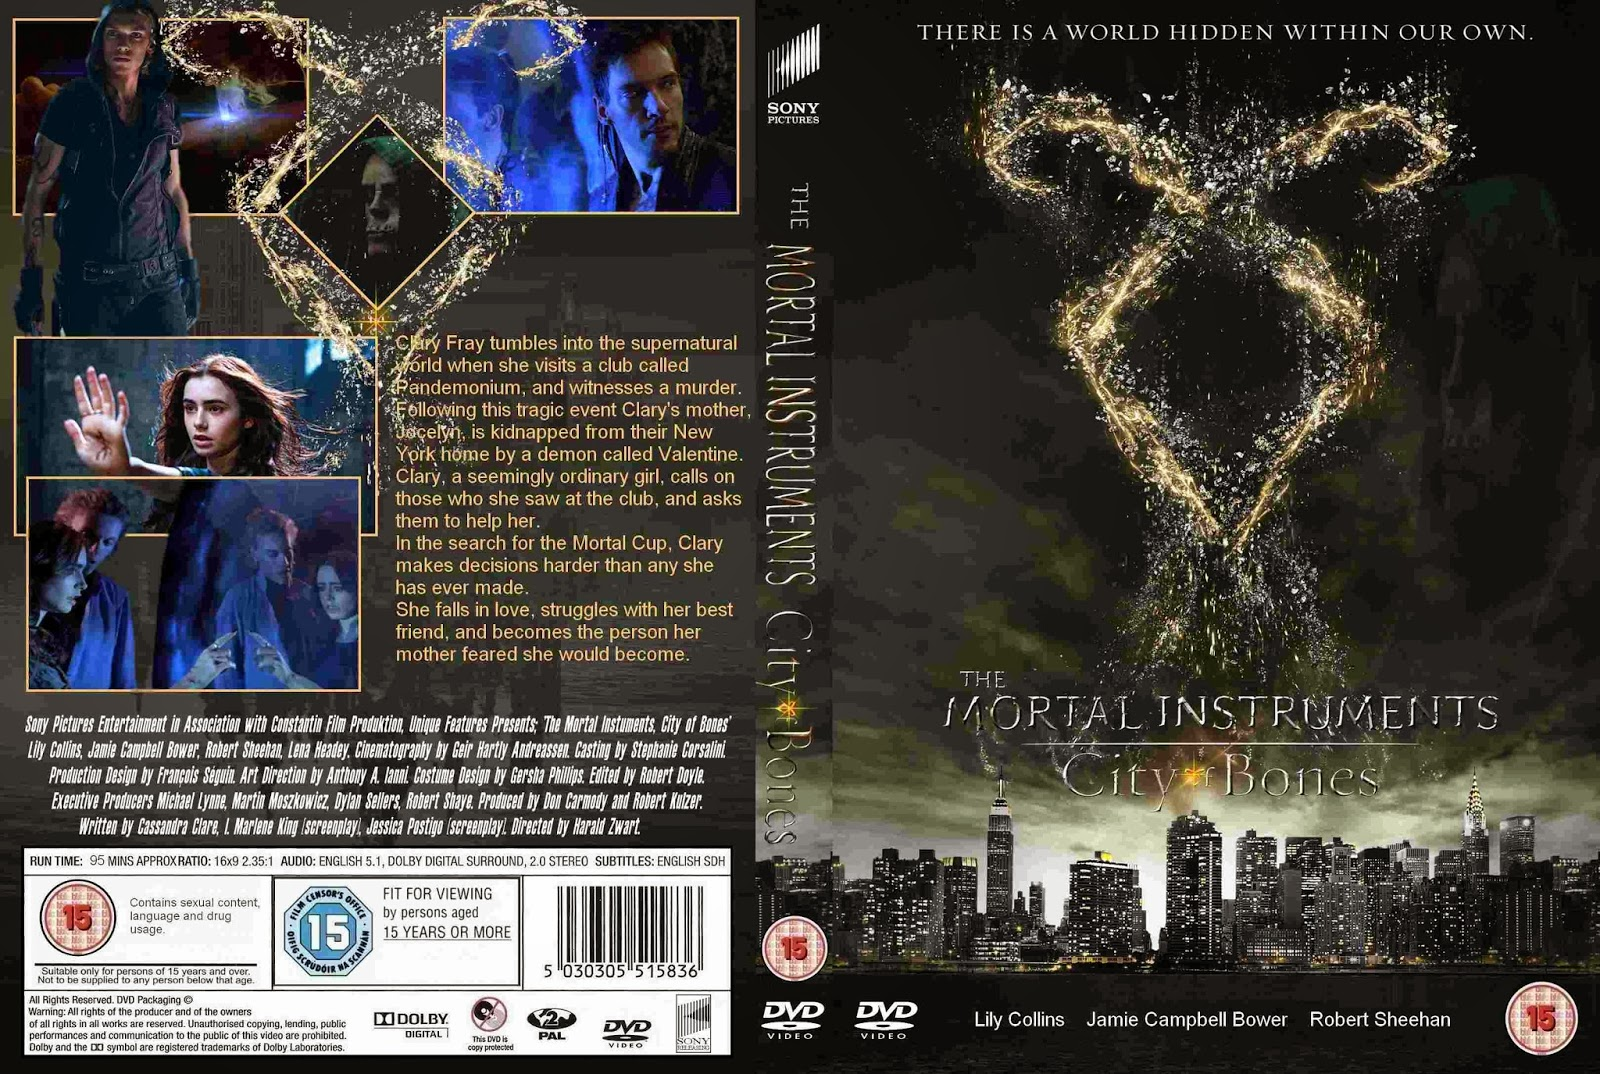 The_Mortal_Instruments__City_Of_Bones_(2013)_R1_CUSTOM-COVERSDOWNLOAD